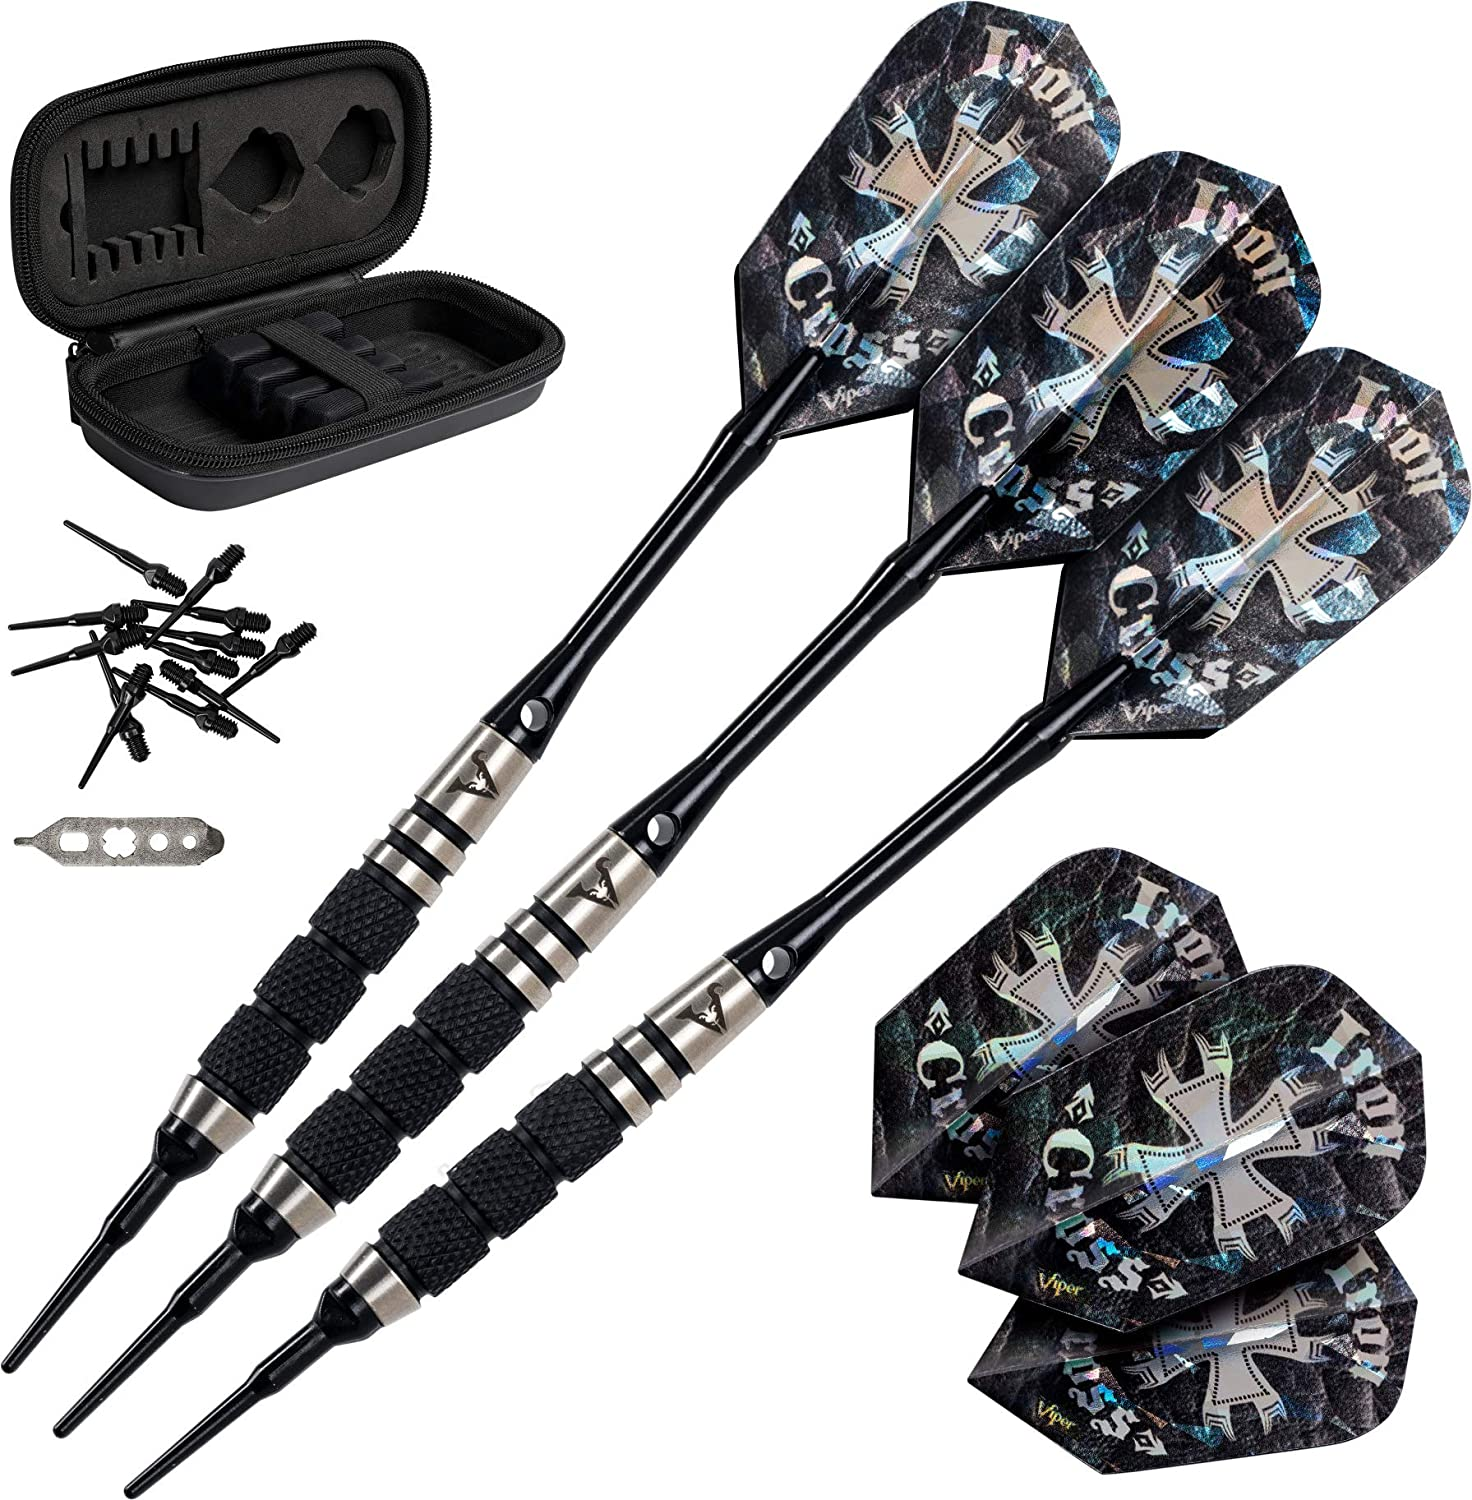 Viper Desperado 80% Tungsten Soft Tip Darts with Storage Travel Case  Iron Cross, 18 Grams